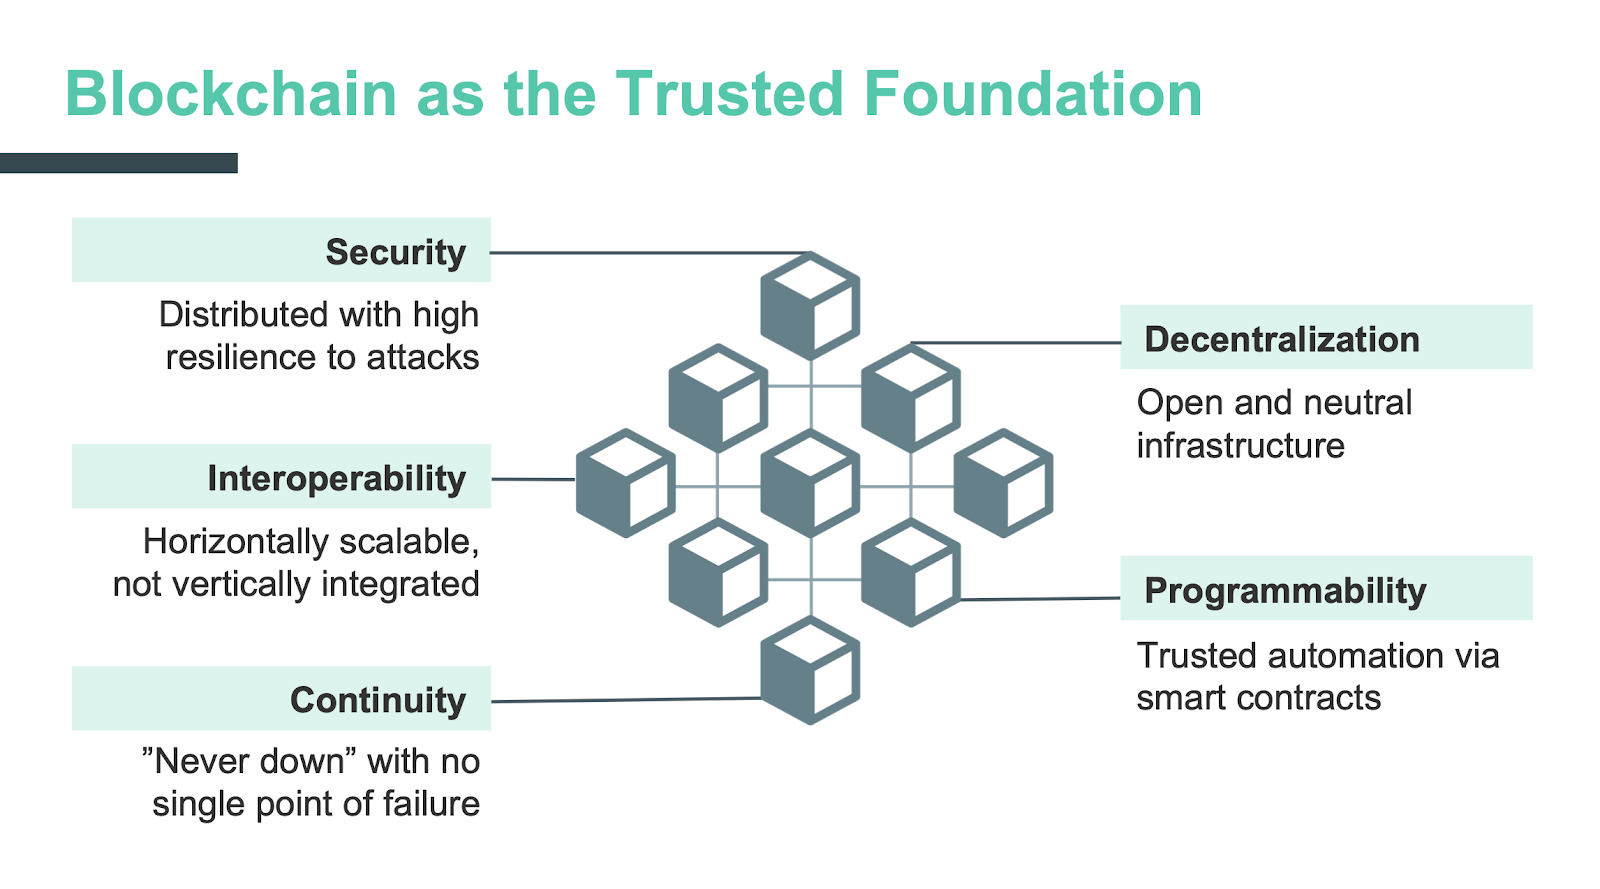 Blockchain as trusted foundation for IoT